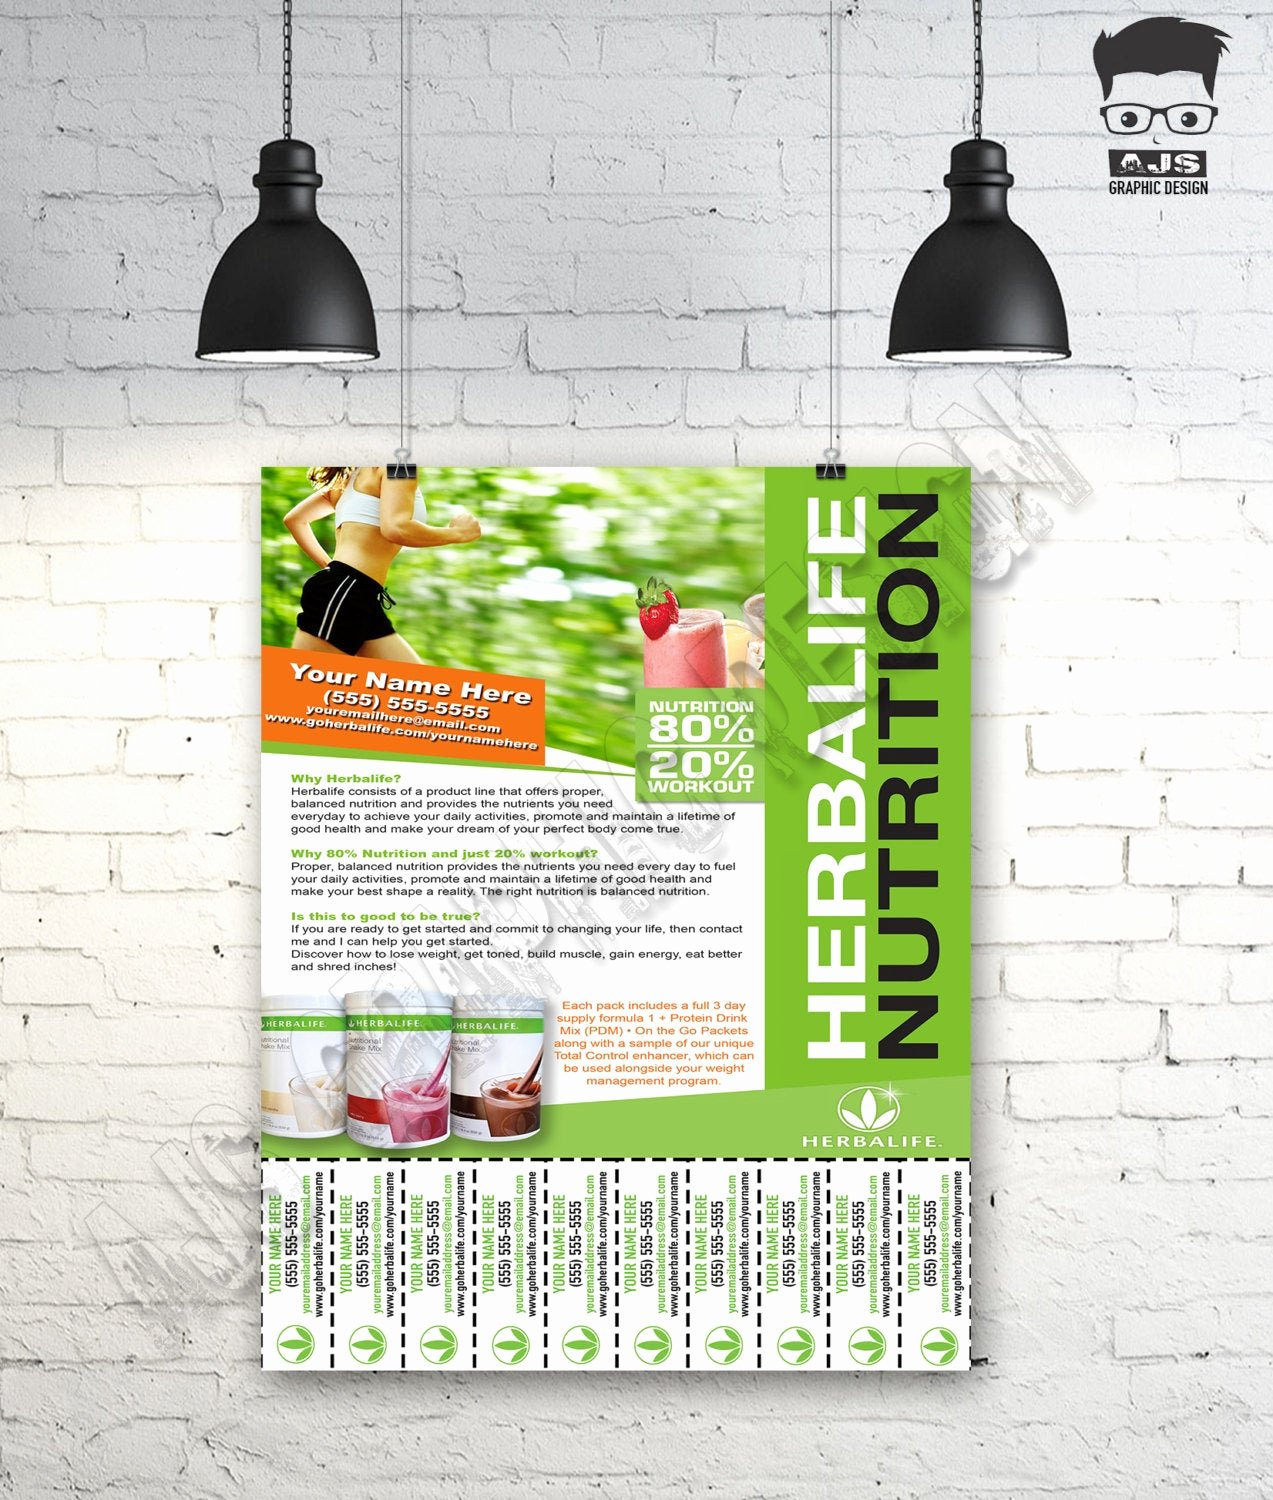 Herbalife Flyer Template Fresh Custom Print Ready Herbalife Contact Flyer by Ajsgraphdesign